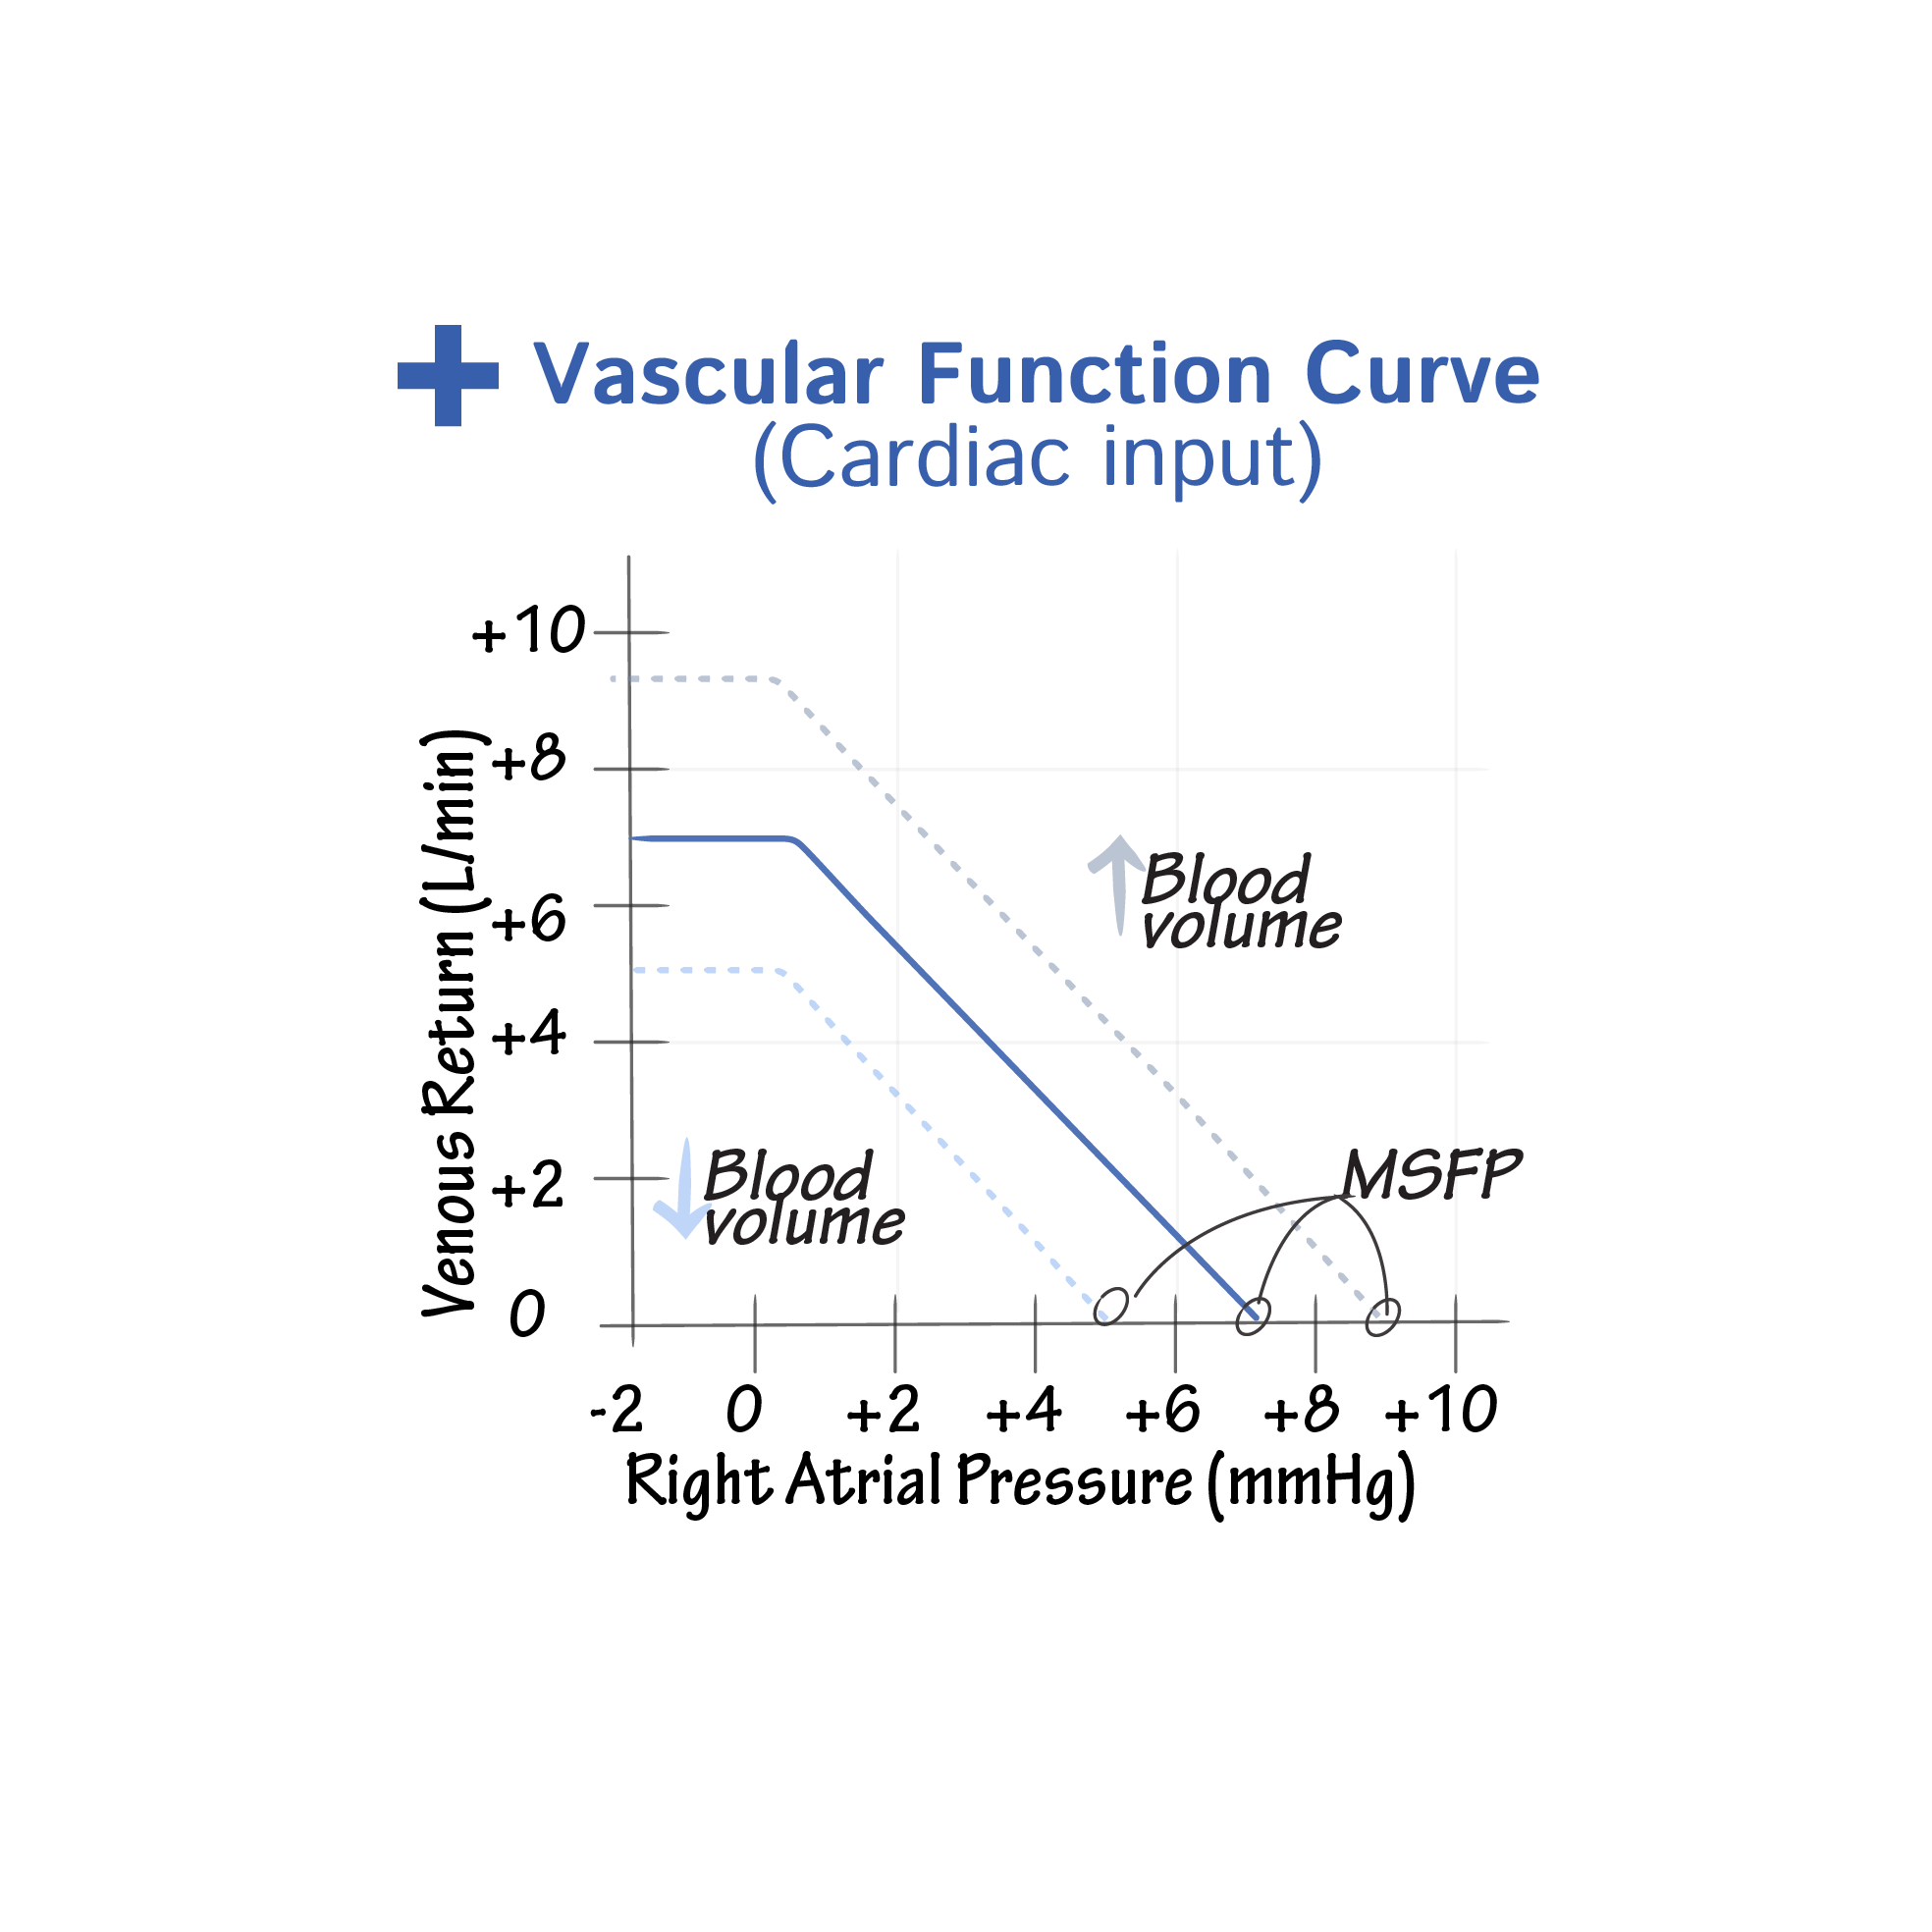 Physiology Glossary Cardiac Output Vascular Function Curves